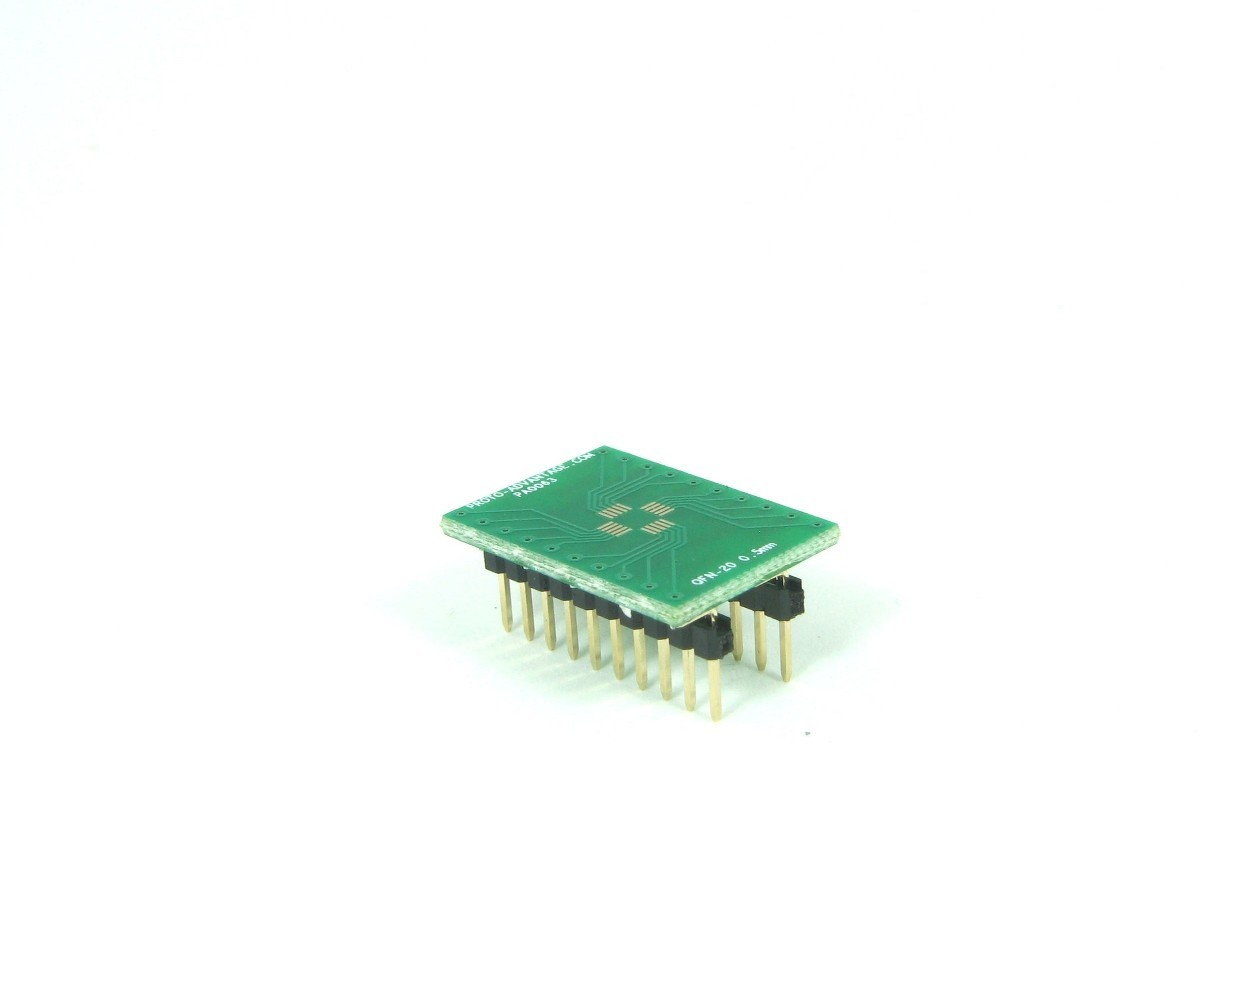 QFN-20 to DIP-20 SMT Adapter (0.5 mm pitch, 4 x 4 mm body)